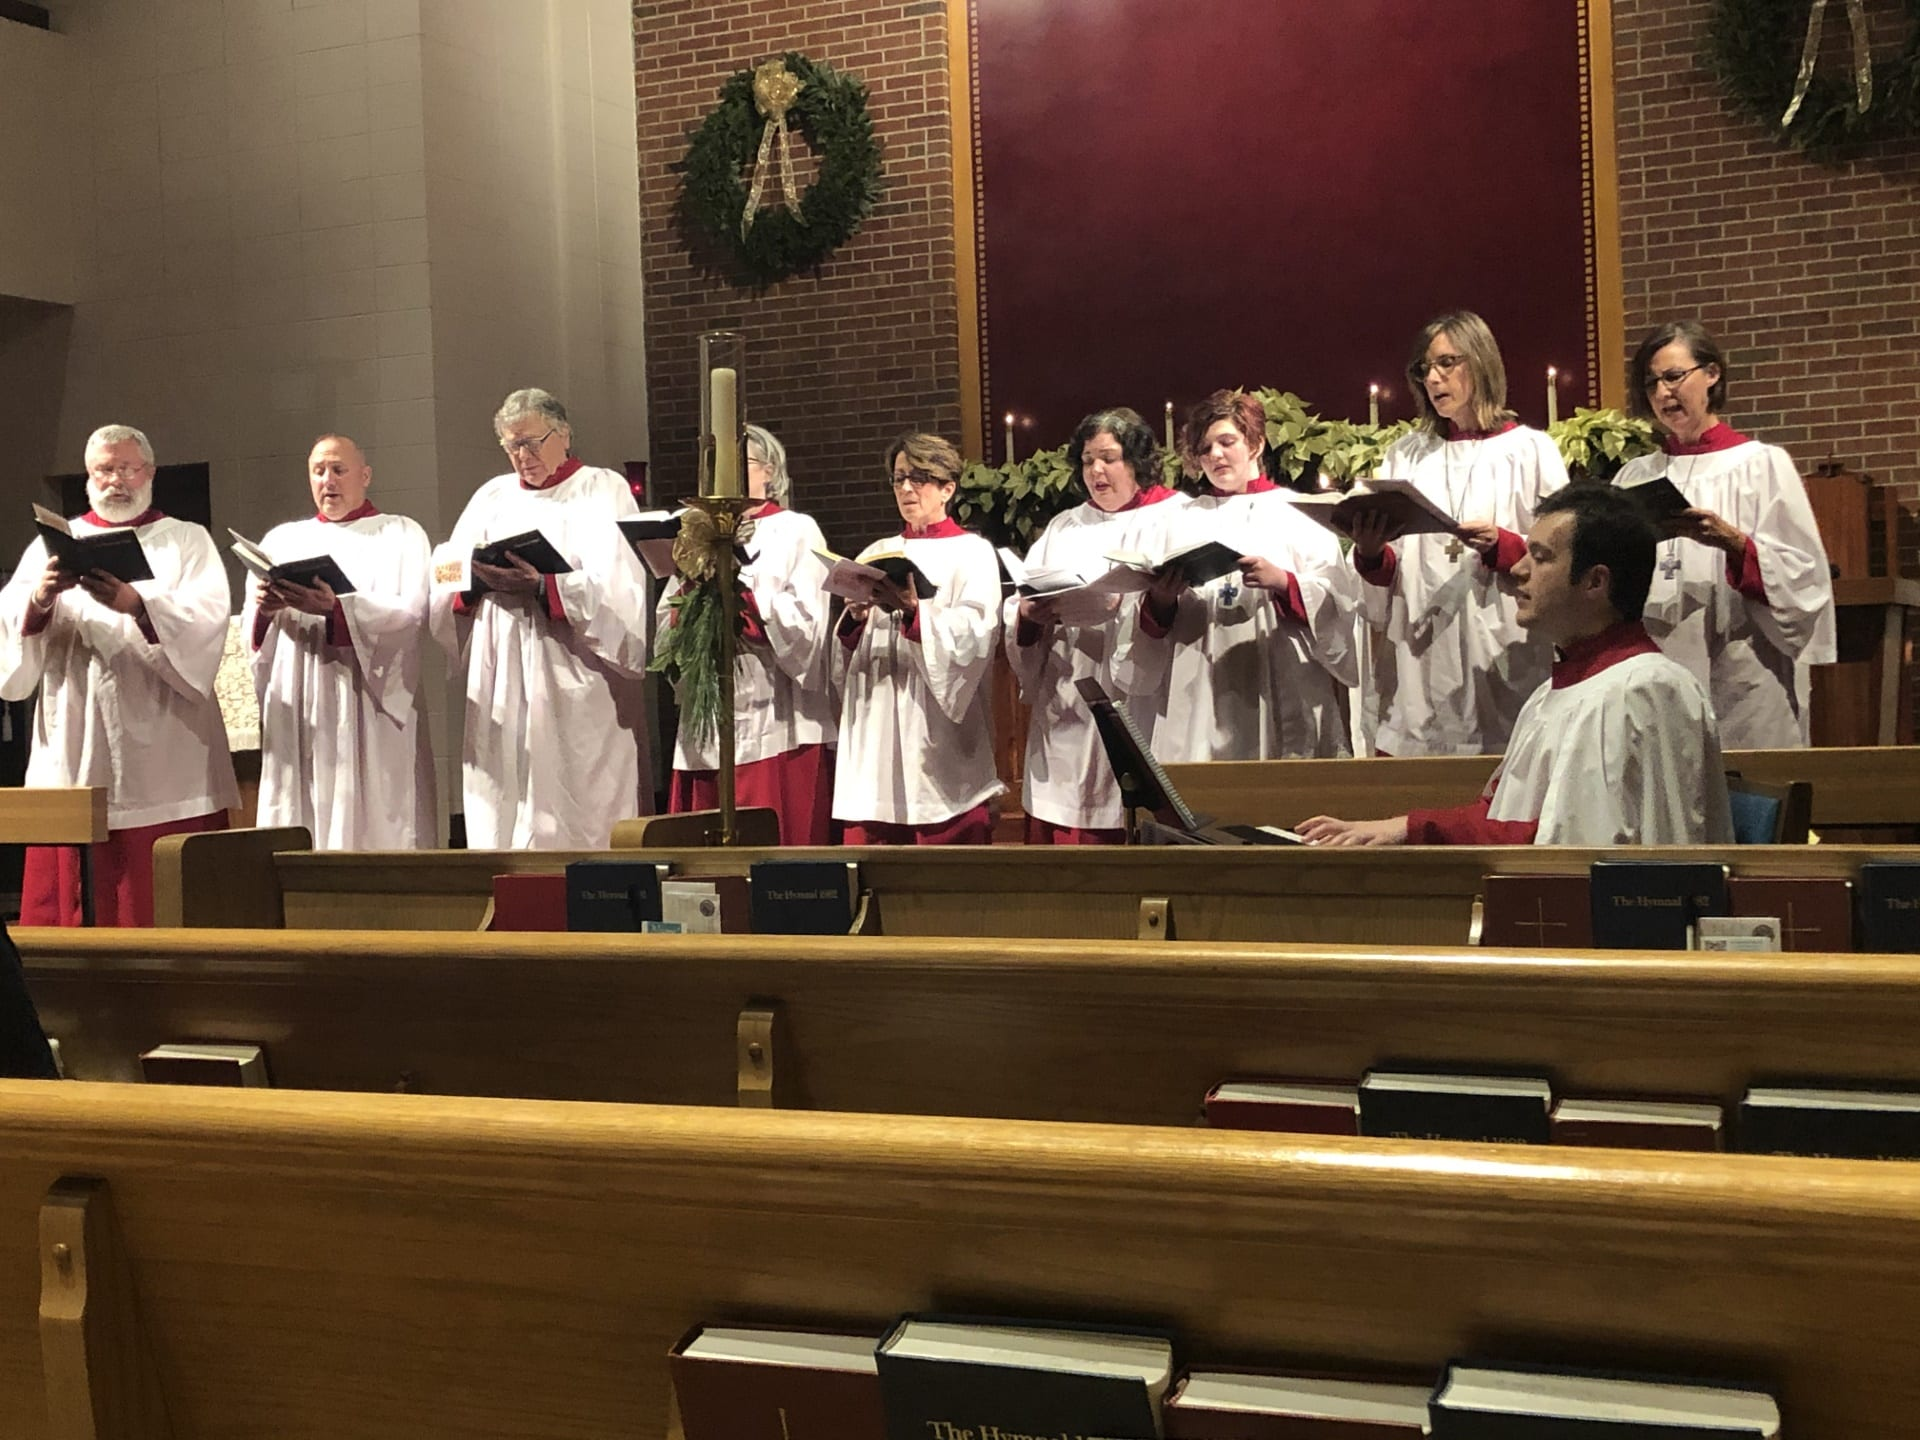 lay liturgical choir img 2345 - St. Philip's Episcopal Church